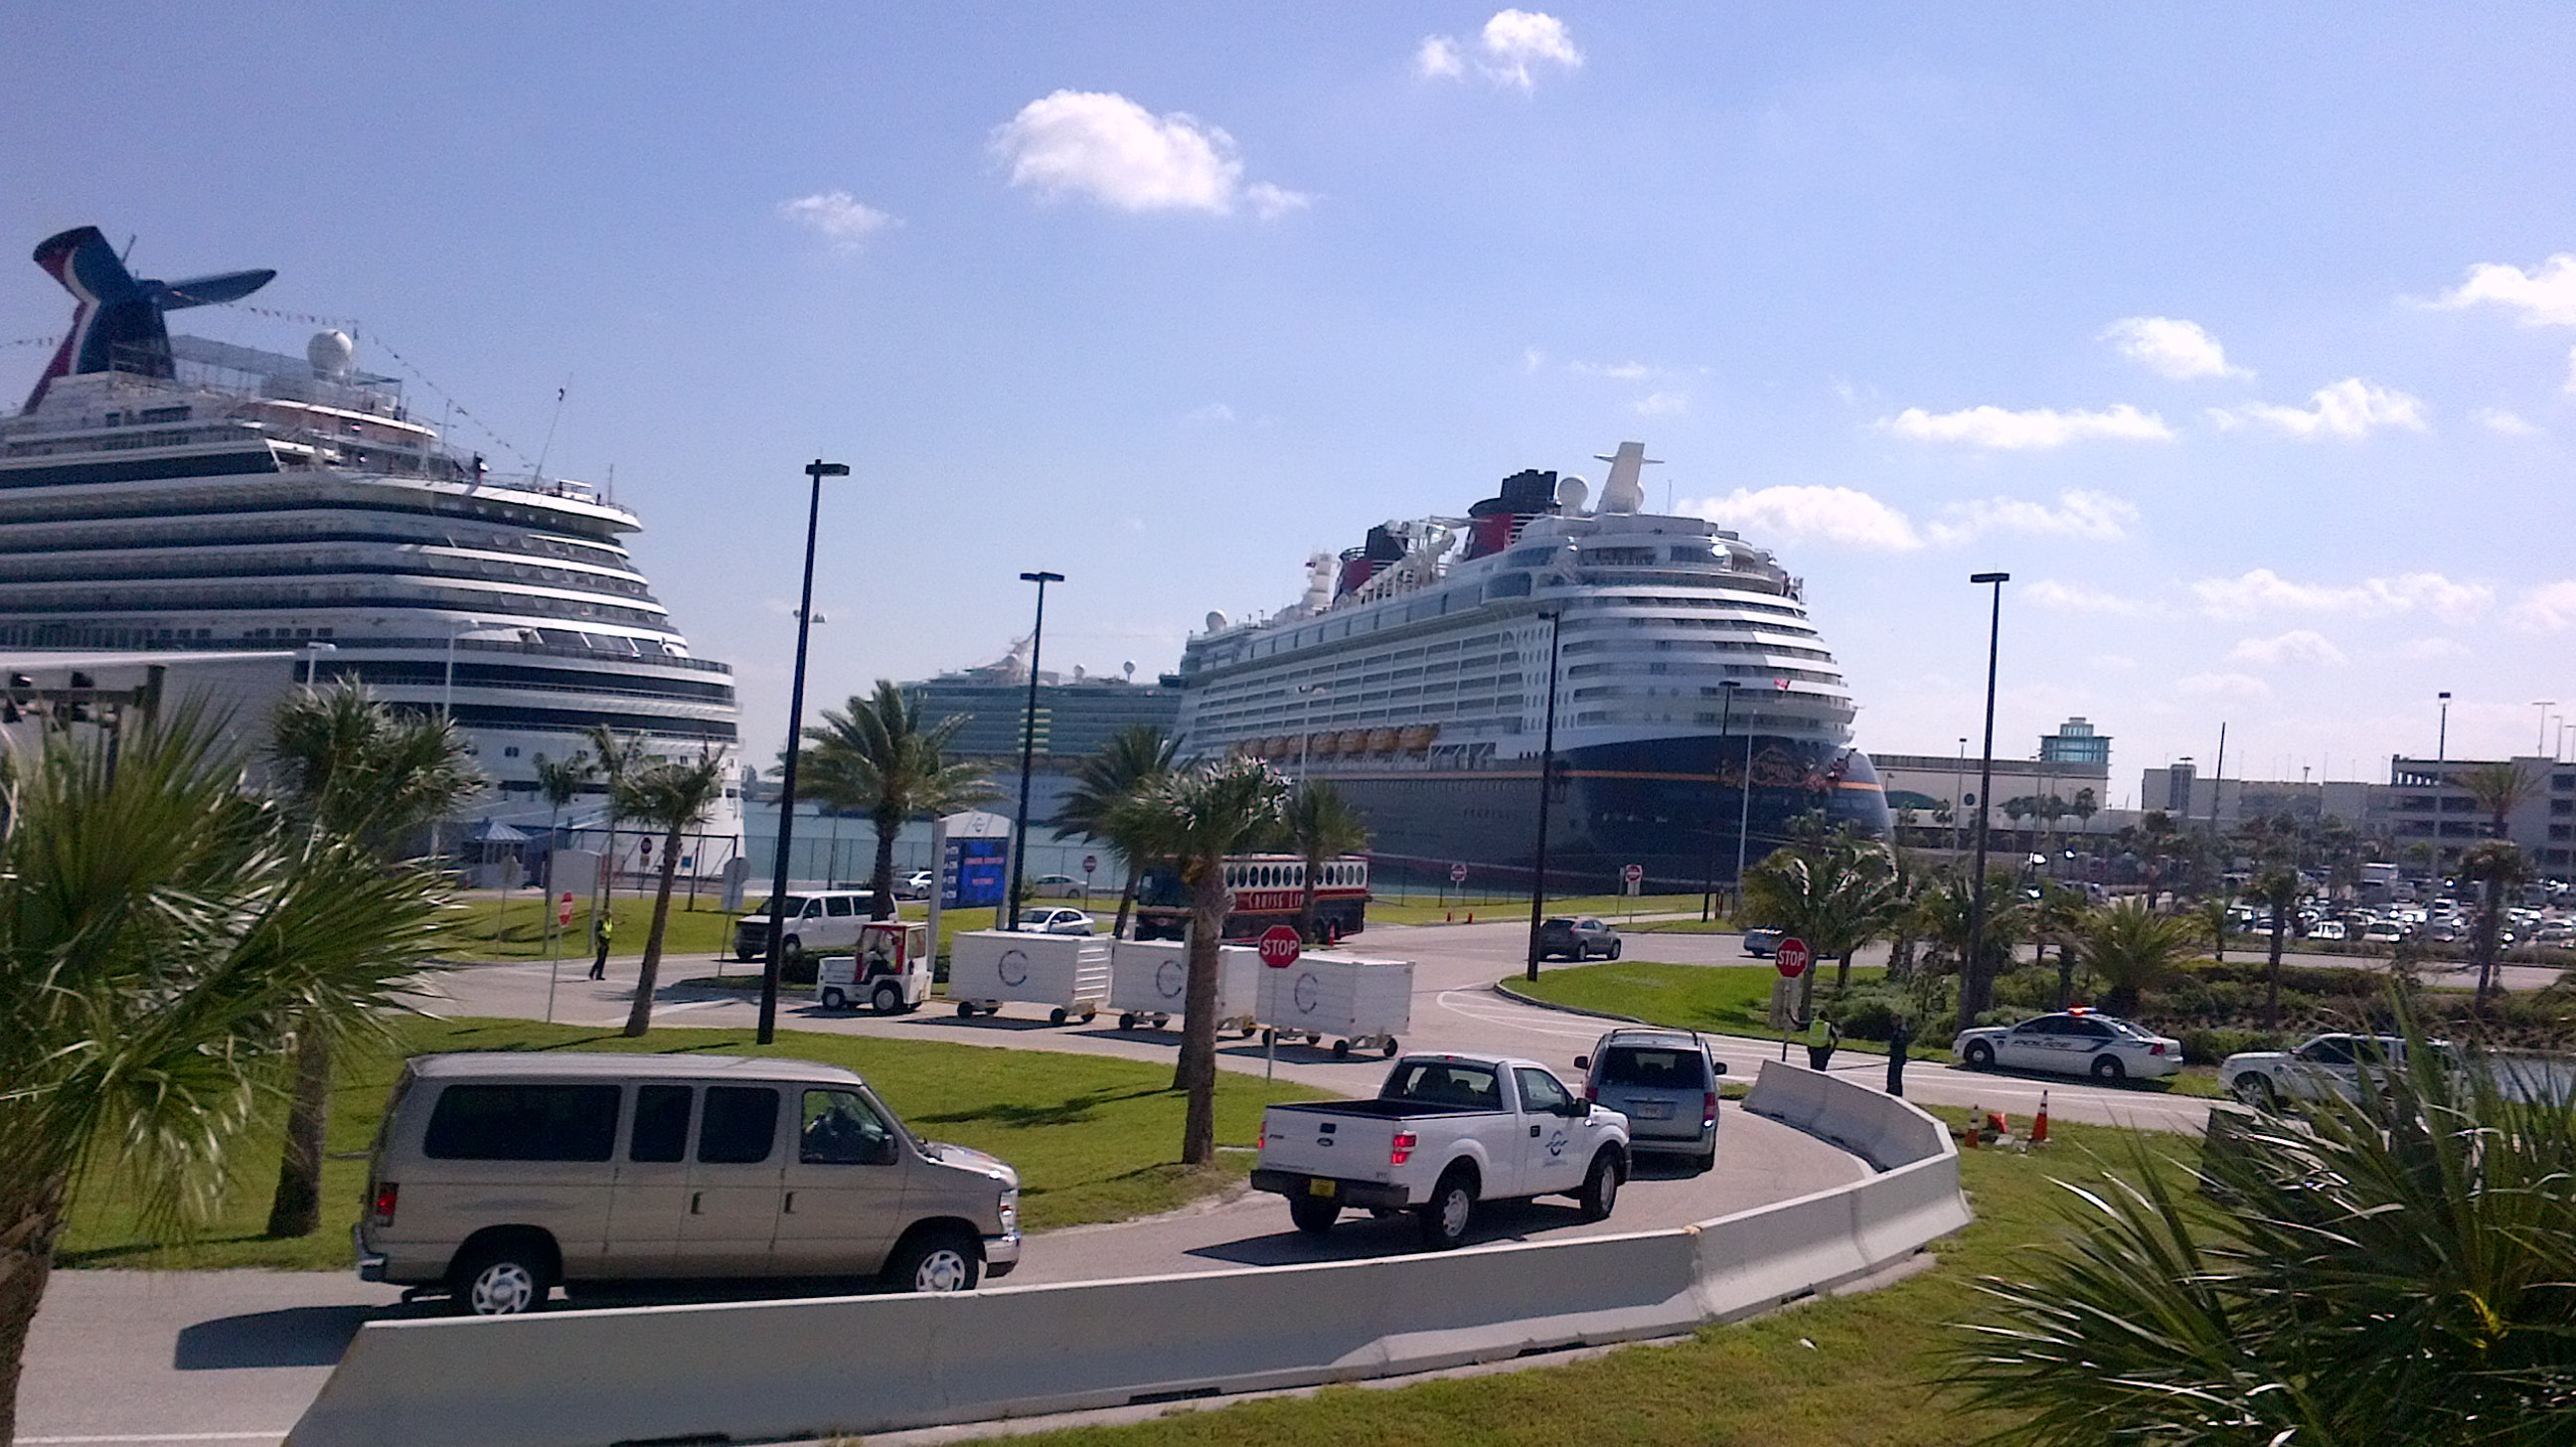 October Port Canaveral Transportation Blog - Cape canaveral cruise ship schedule